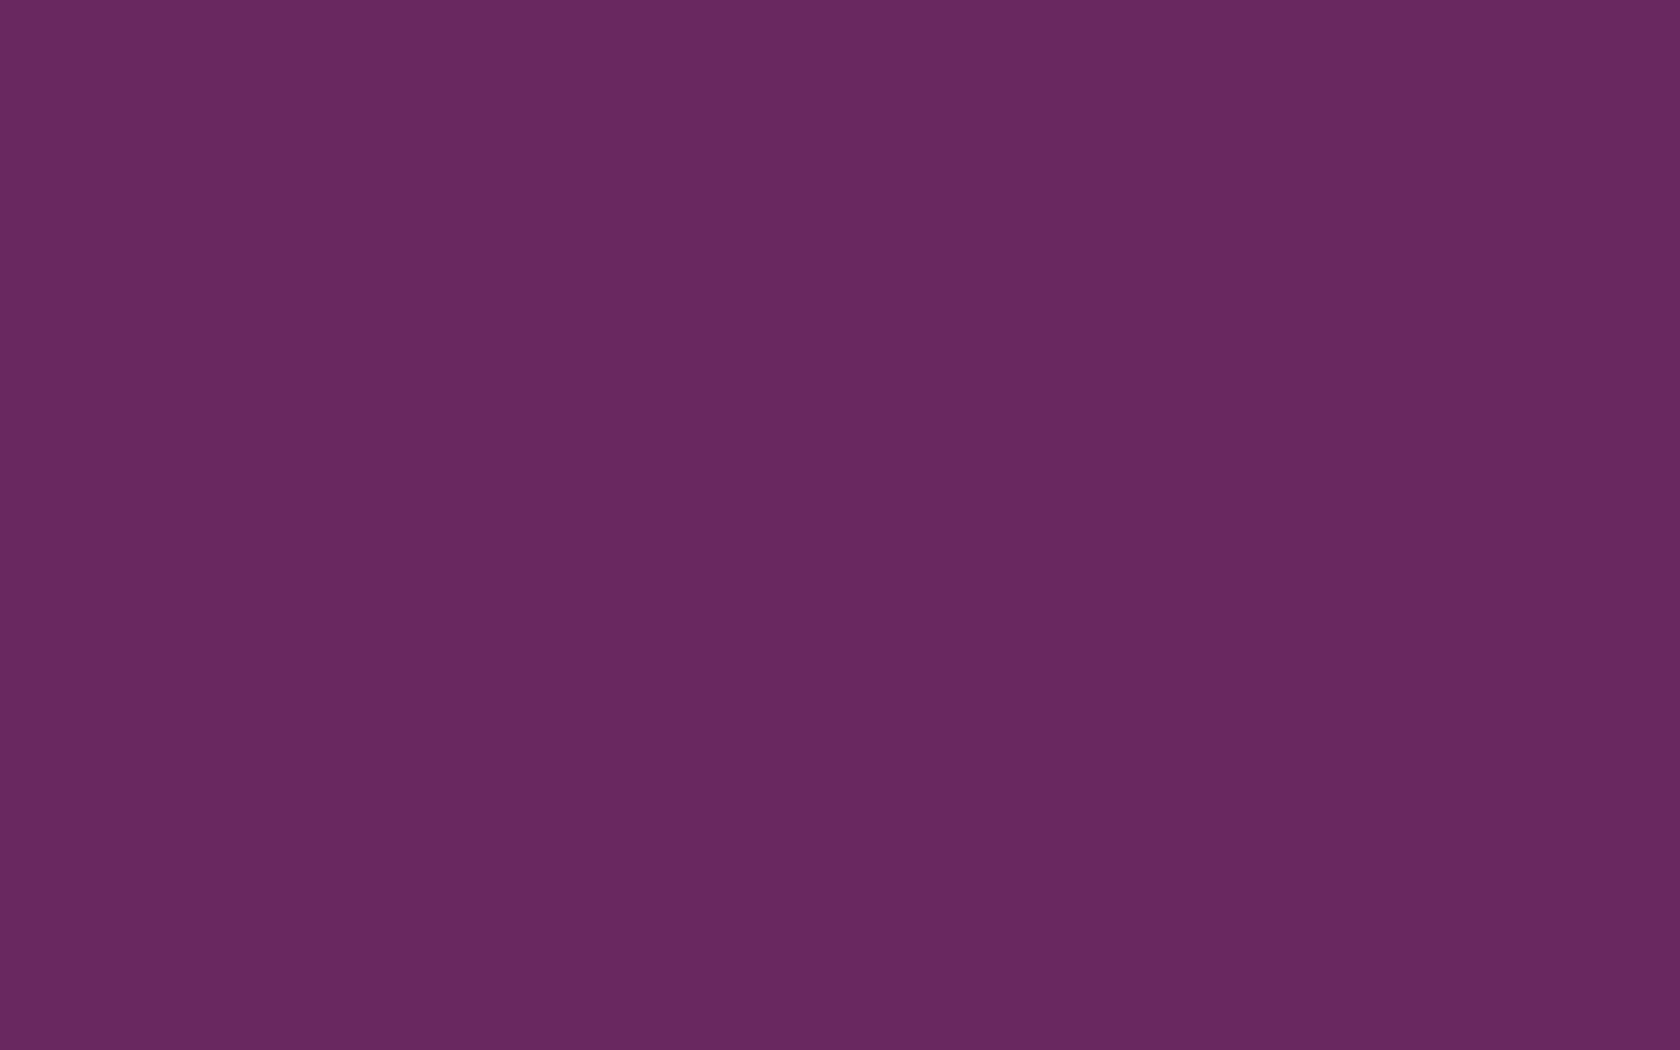 1680x1050 Palatinate Purple Solid Color Background